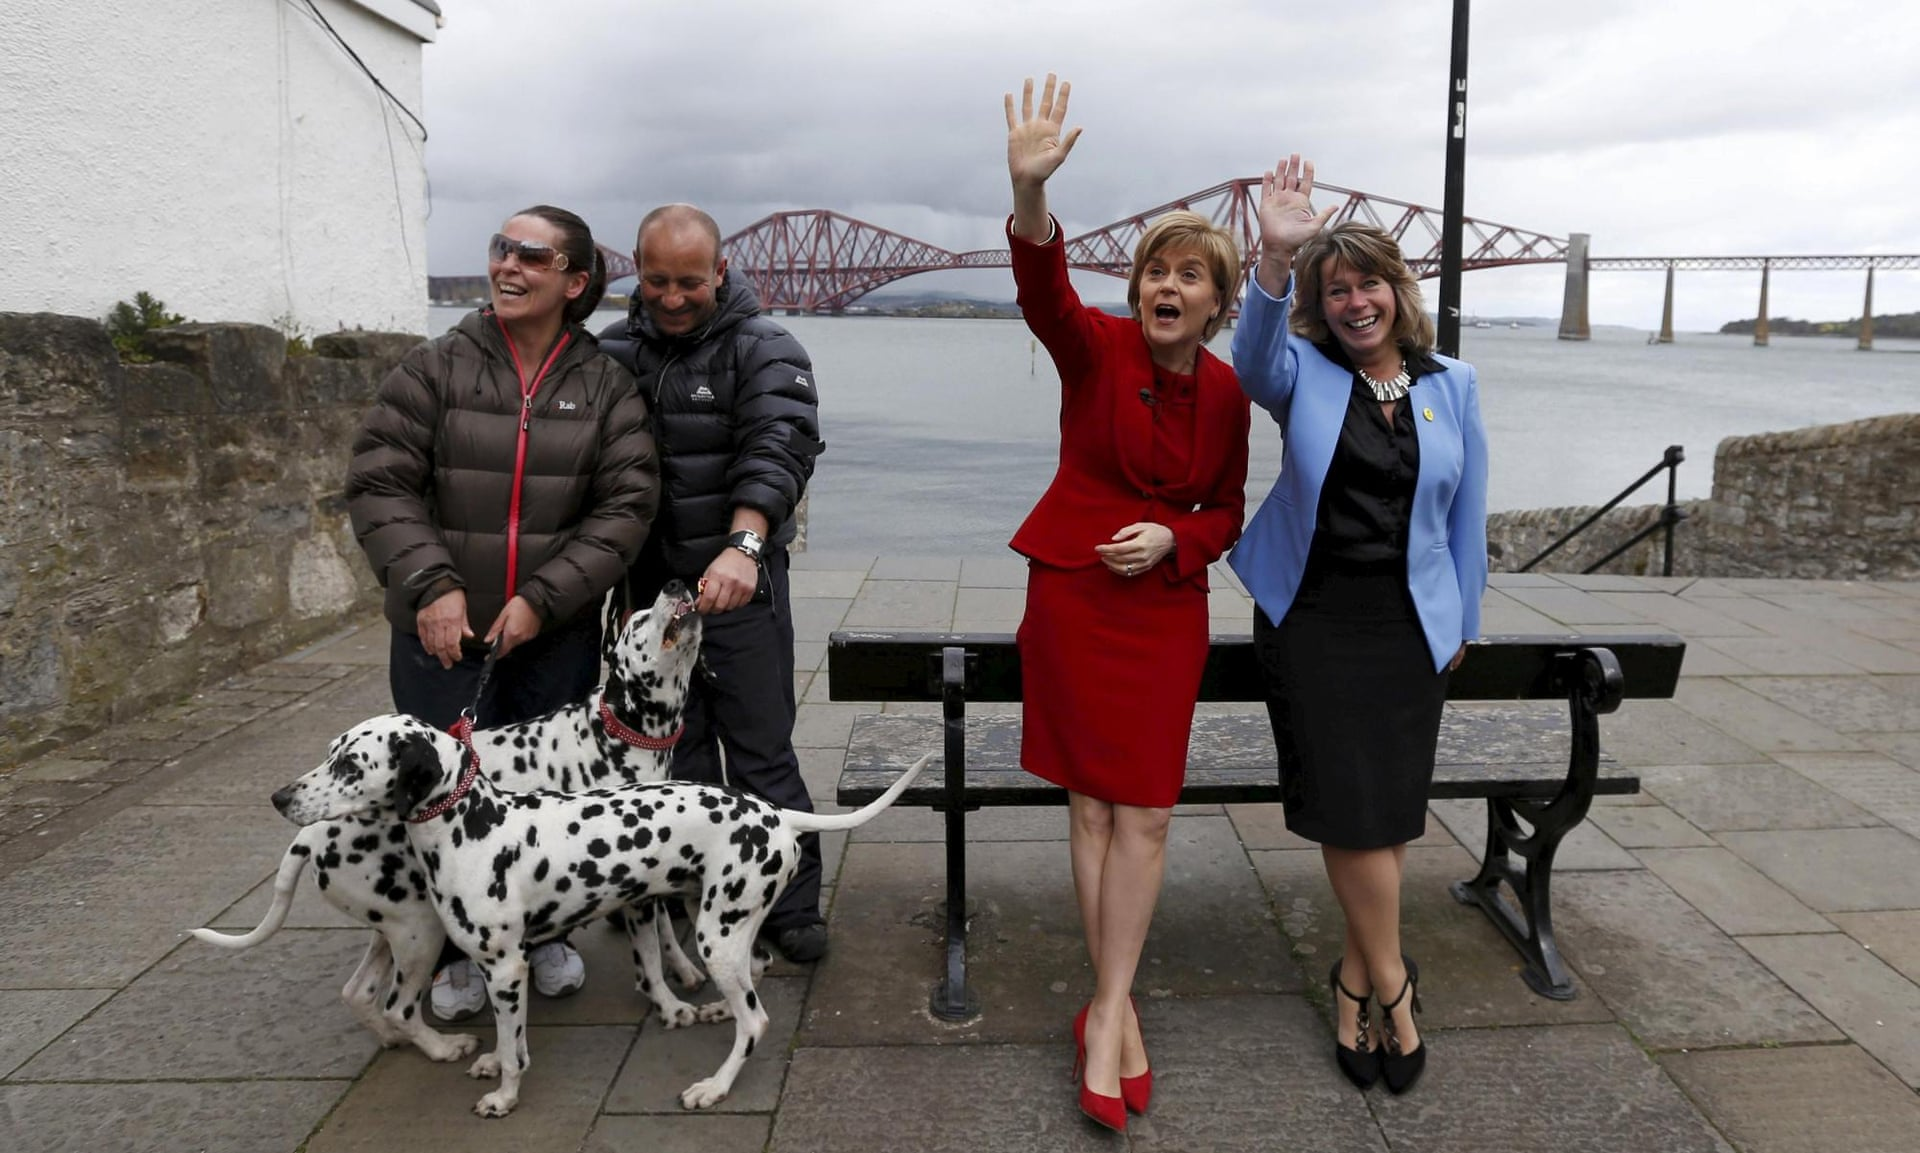 Nicola Sturgeon, the Scottish National party leader, with parliamentary candidate Michelle Thomson during a campaign visit to South Queensferry. Photograph: Russell Cheyne/Reuters